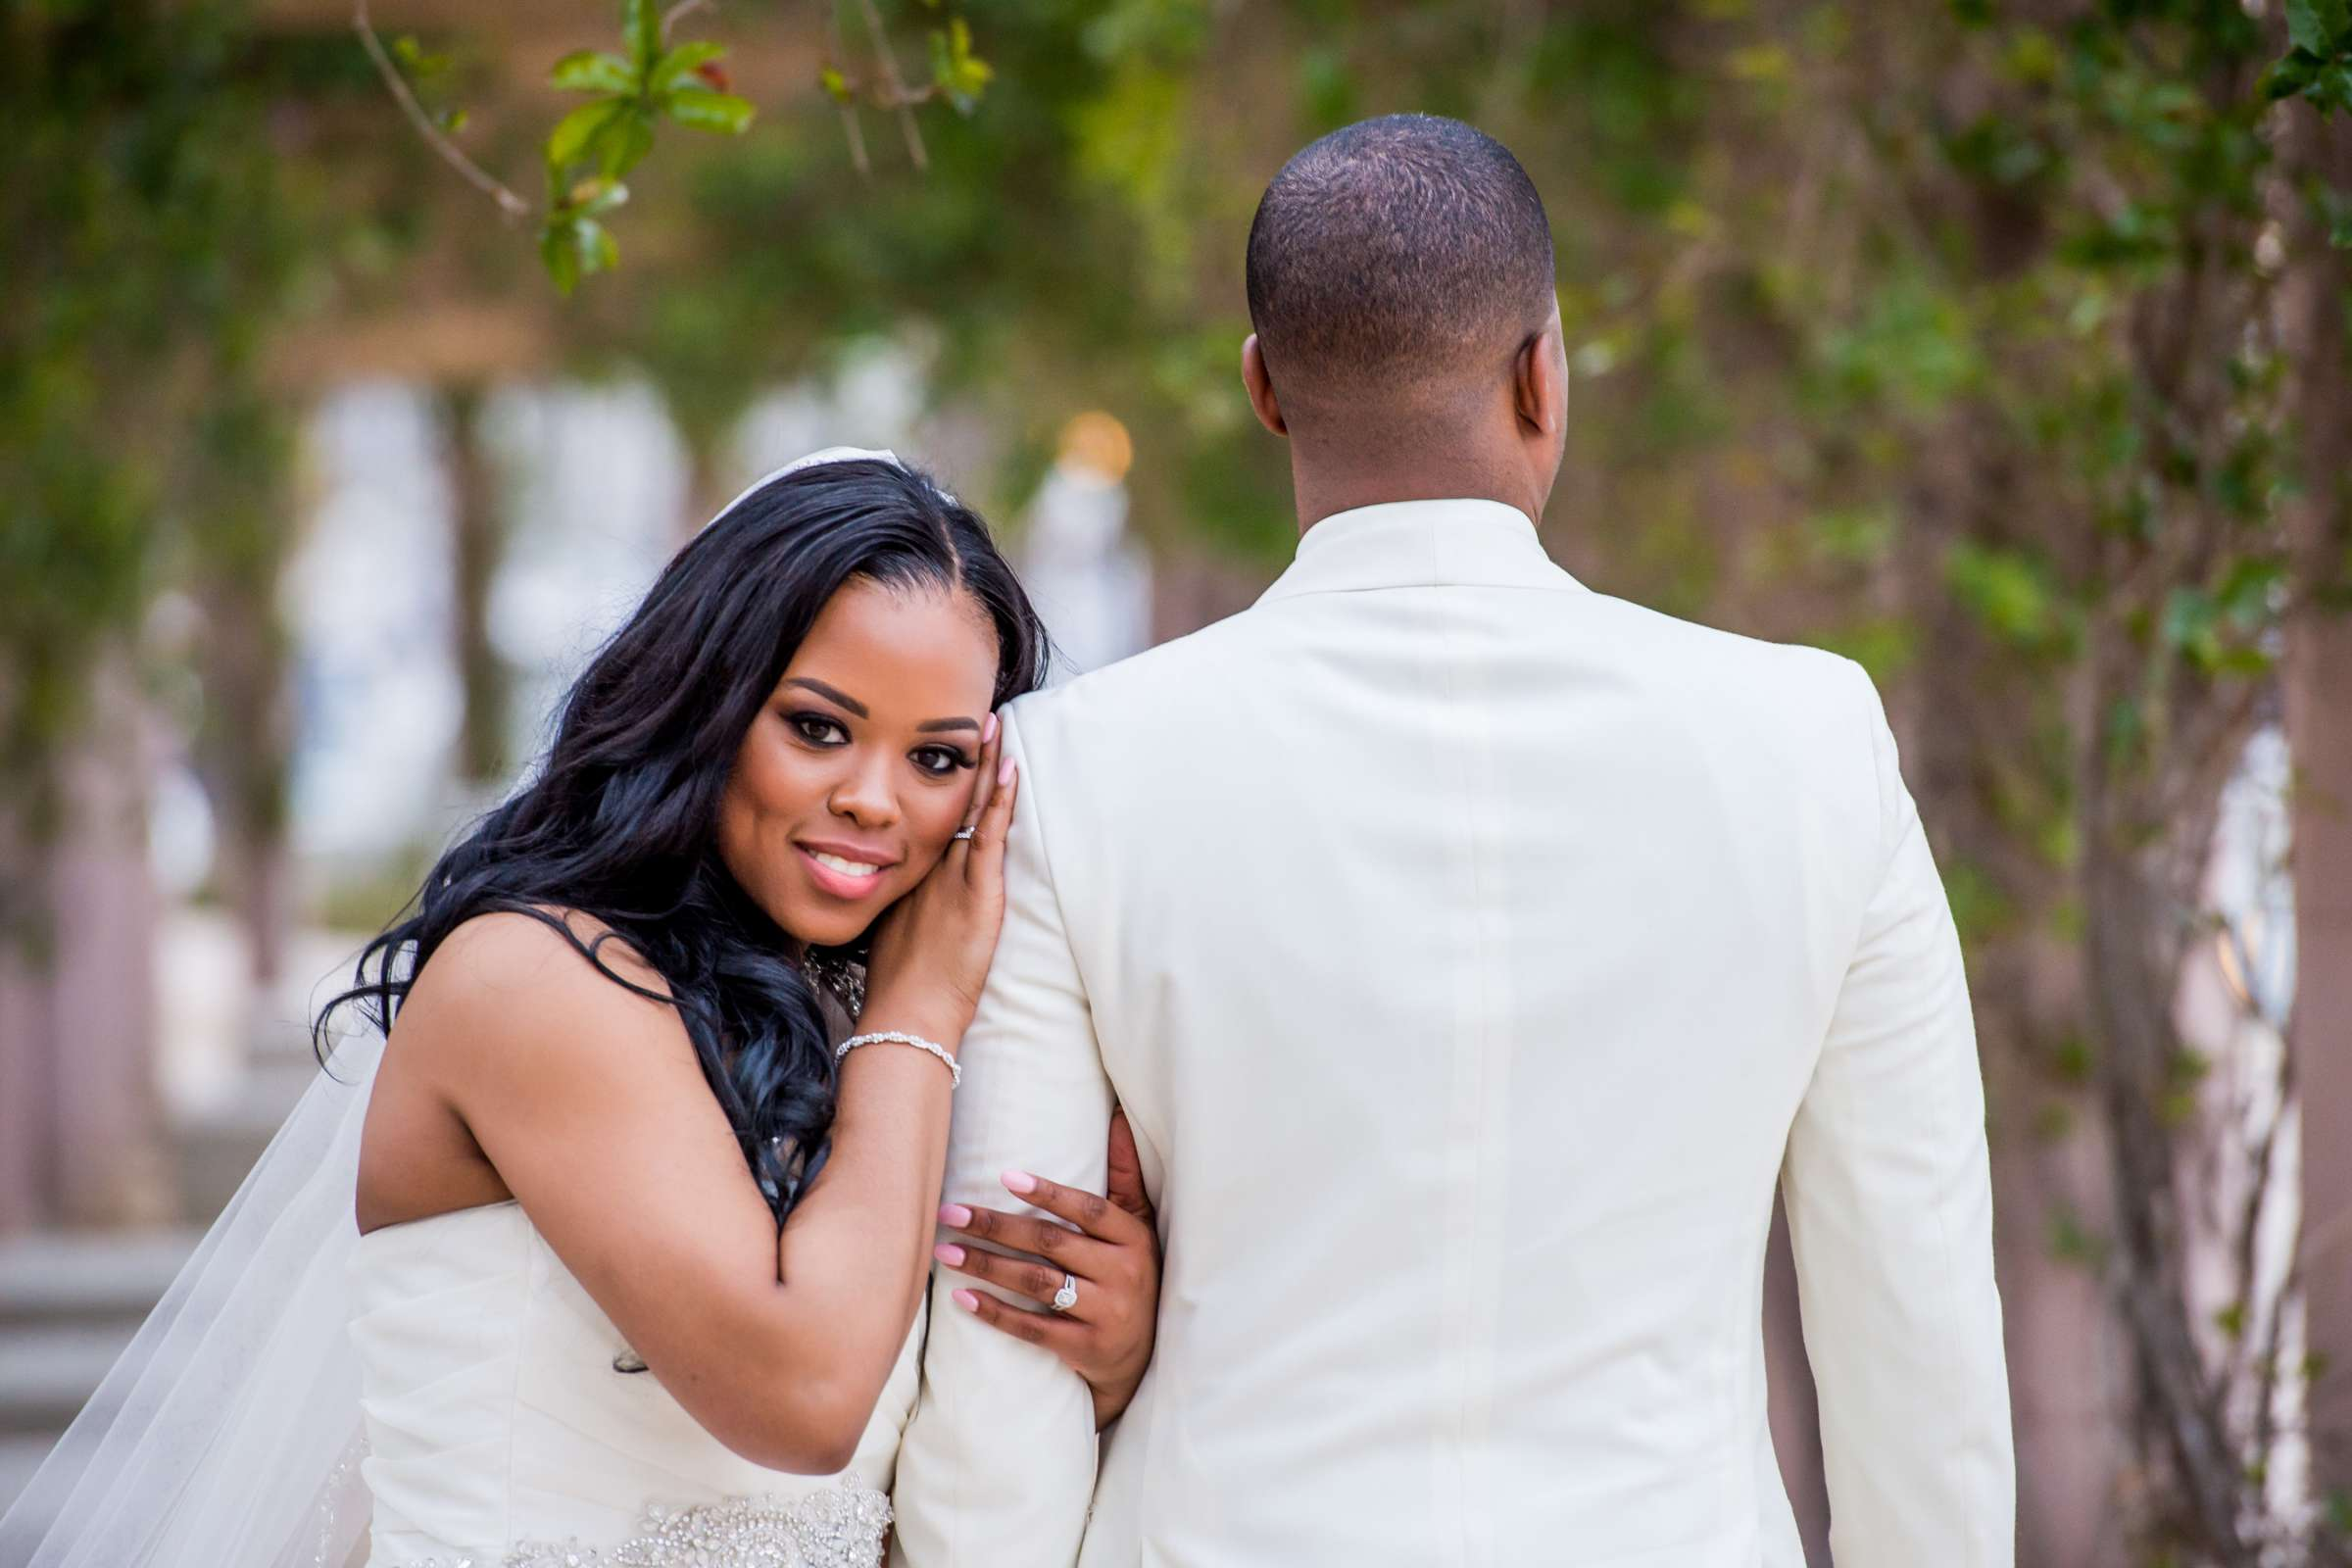 Coronado Community Center Wedding coordinated by First Comes Love Weddings & Events, Nikia and Charles Wedding Photo #67 by True Photography